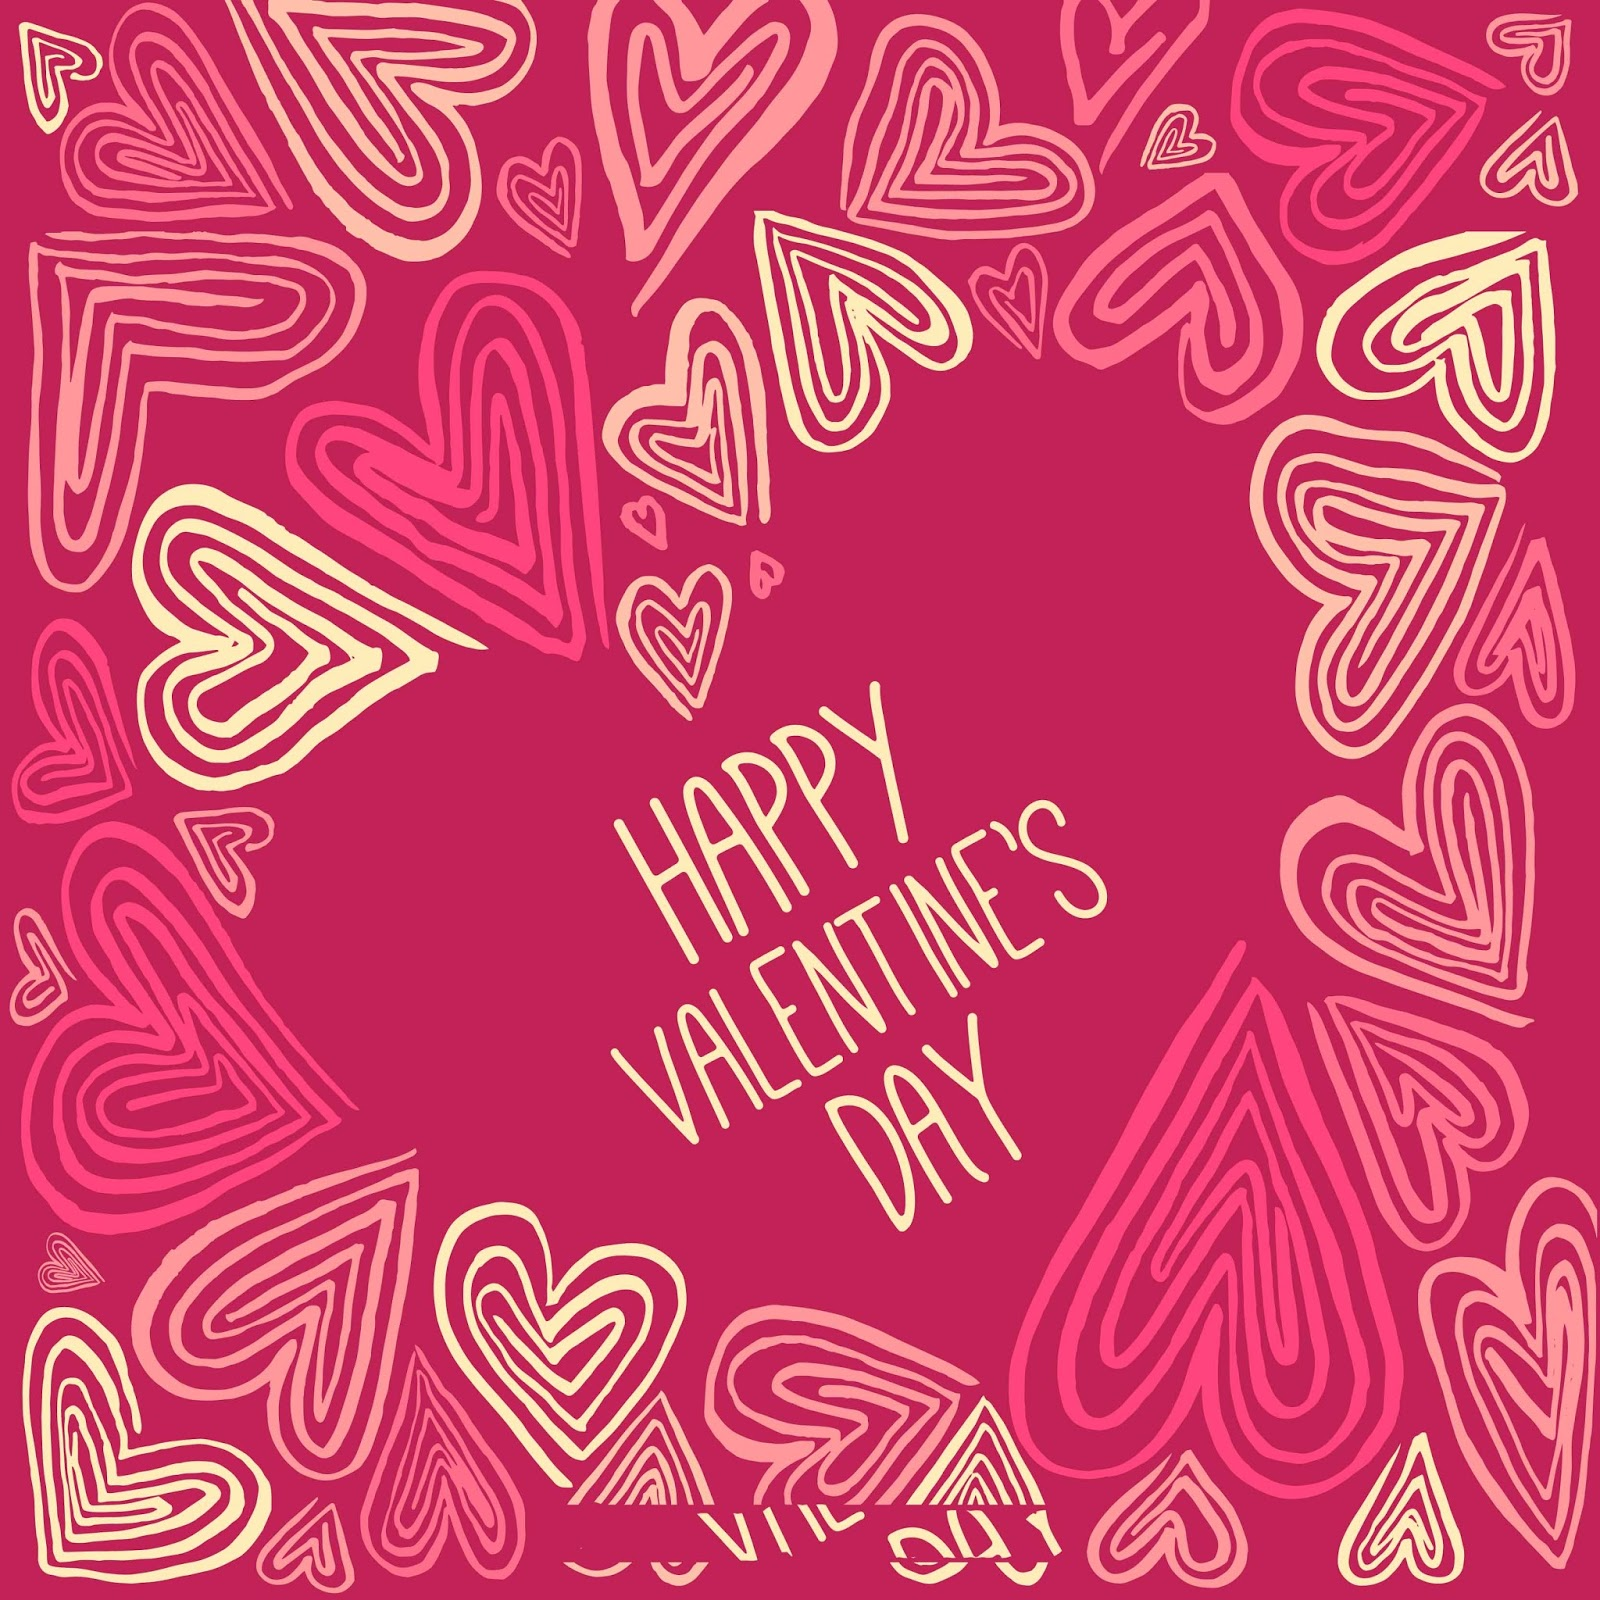 valentines day pictures for facebook, whsatsaap